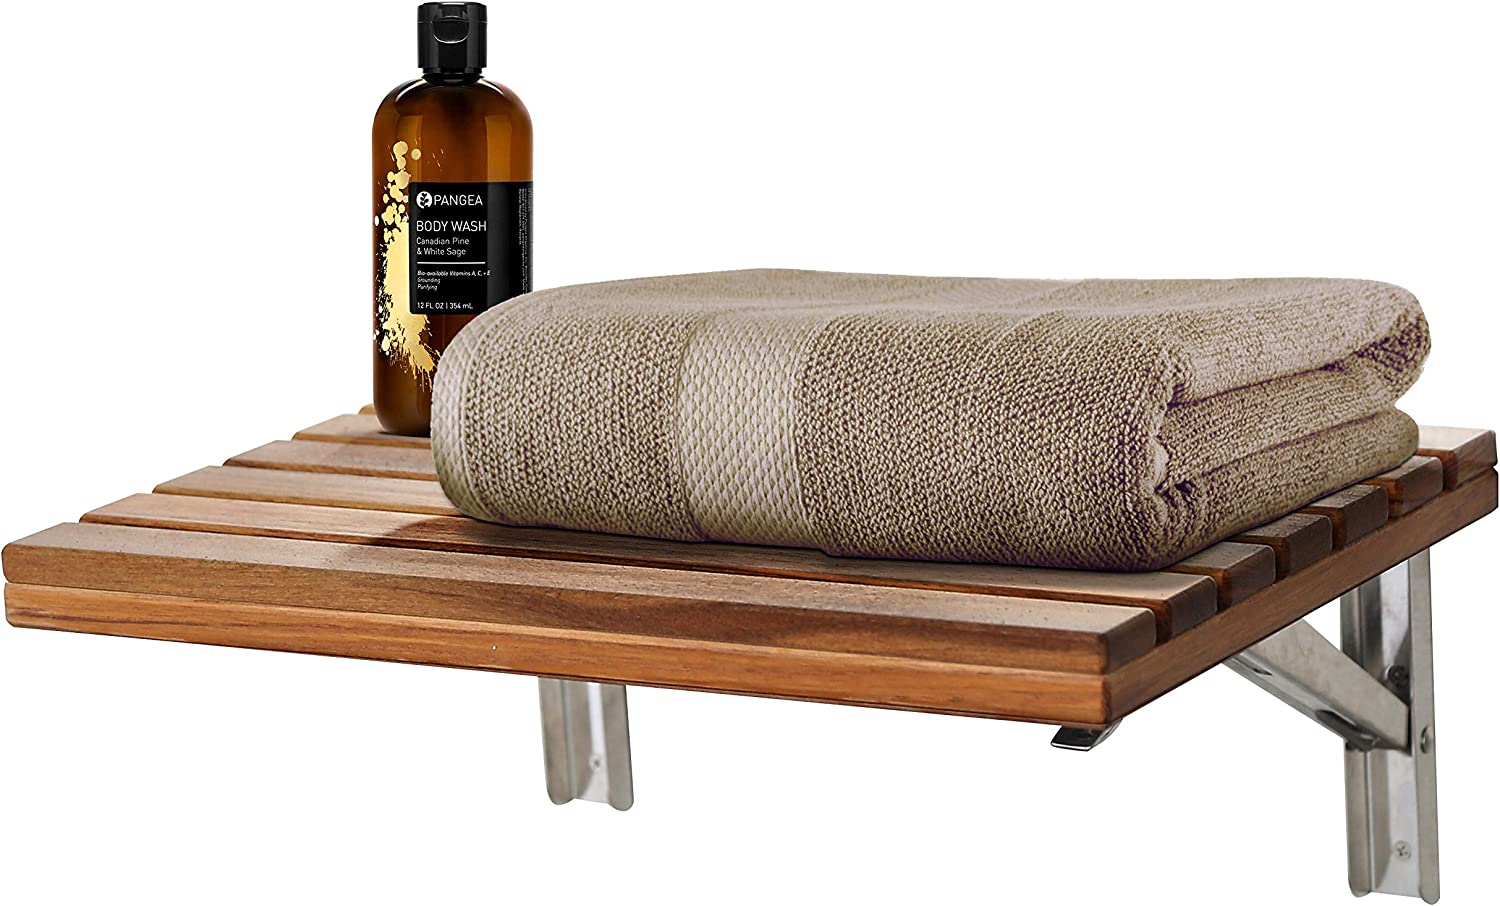 ANZZI Goreme 17 in x 12.6 in Wall Mounted Teak Folding Shower Seat | 280 lbs Weight Capacity Wood and Stainless Steel Spa Bench Fold Down Seat for Bath | Modern Wooden Foldable Shower Chair | AC-AZ204